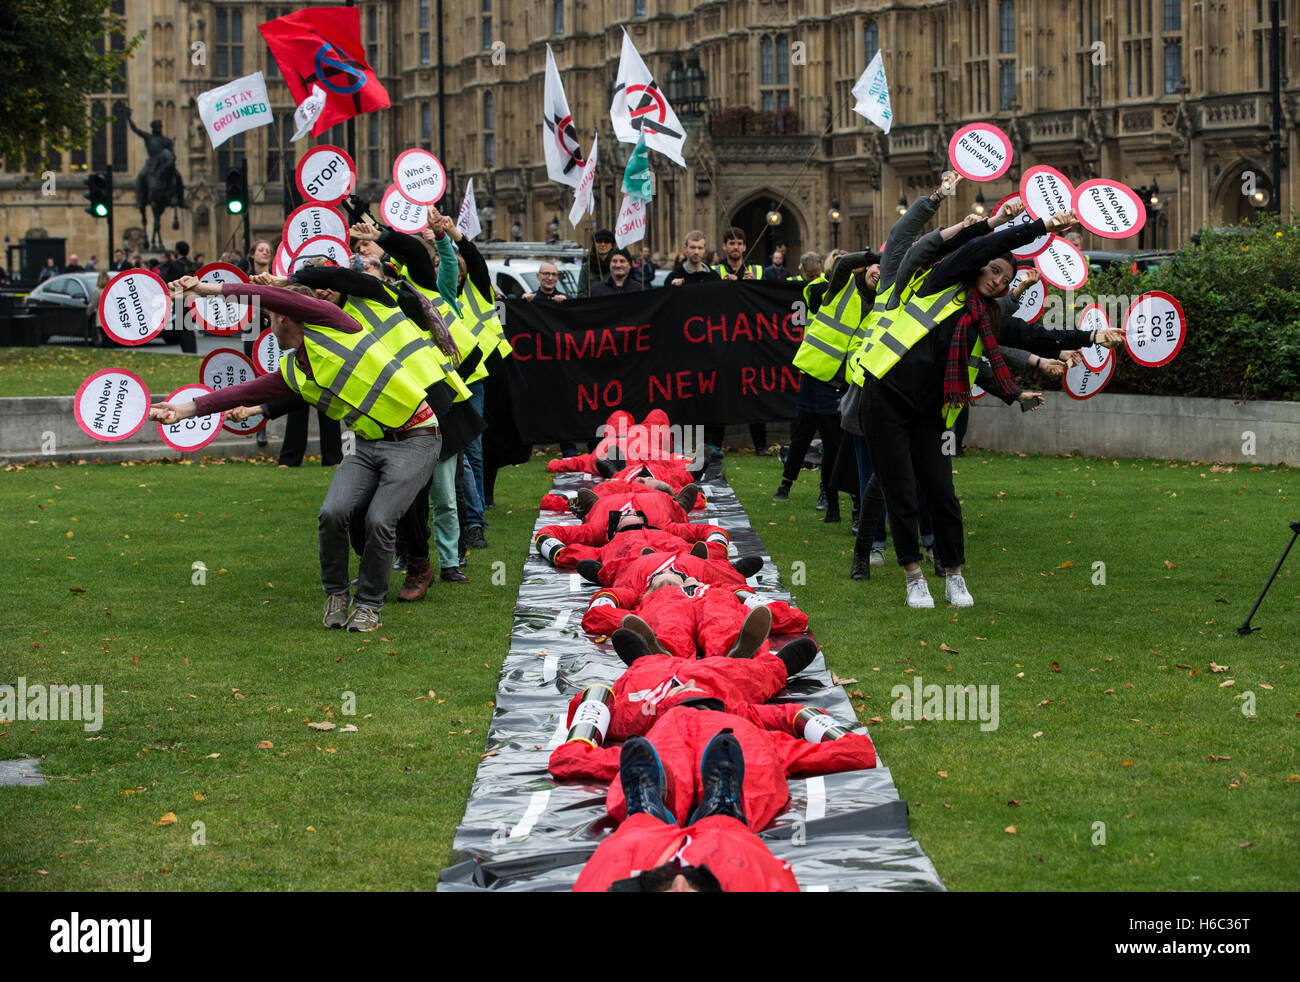 Activists from Plane Stupid and others demonstrate against the decision by Parliament to build a third runway at - Stock Image